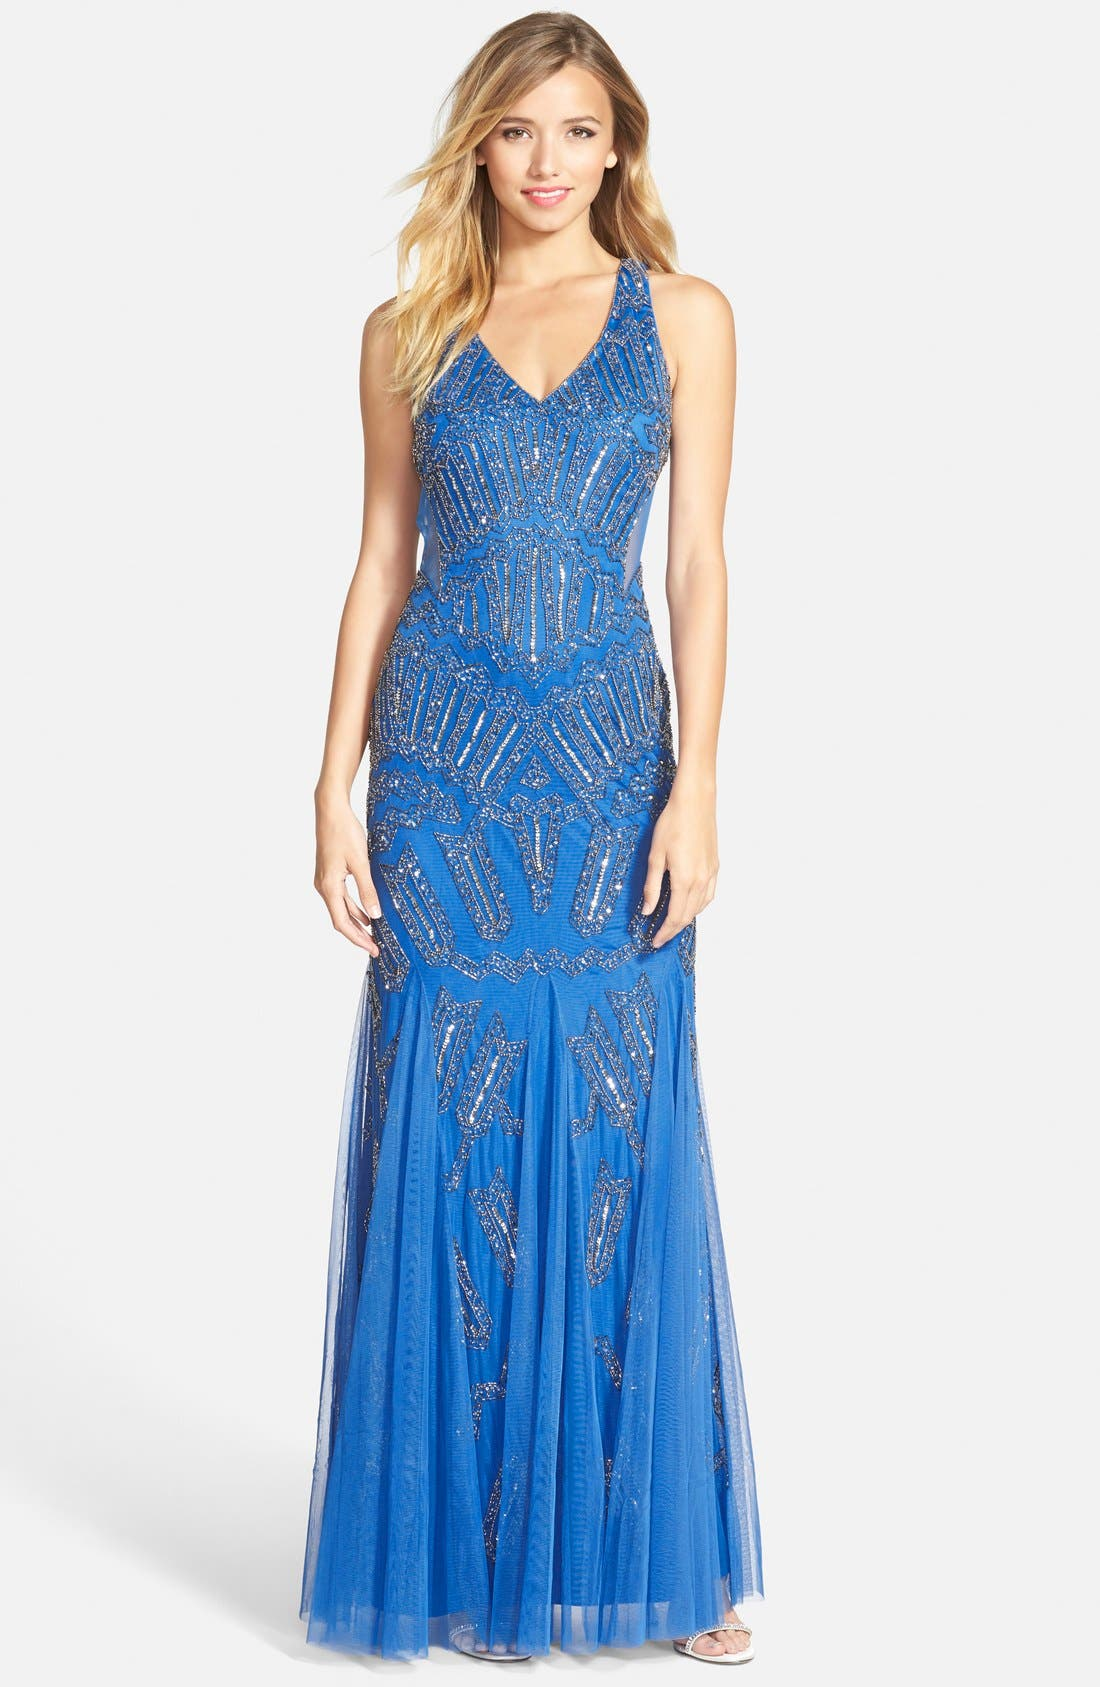 Main Image - Adrianna Papell Beaded Mesh Inset Gown